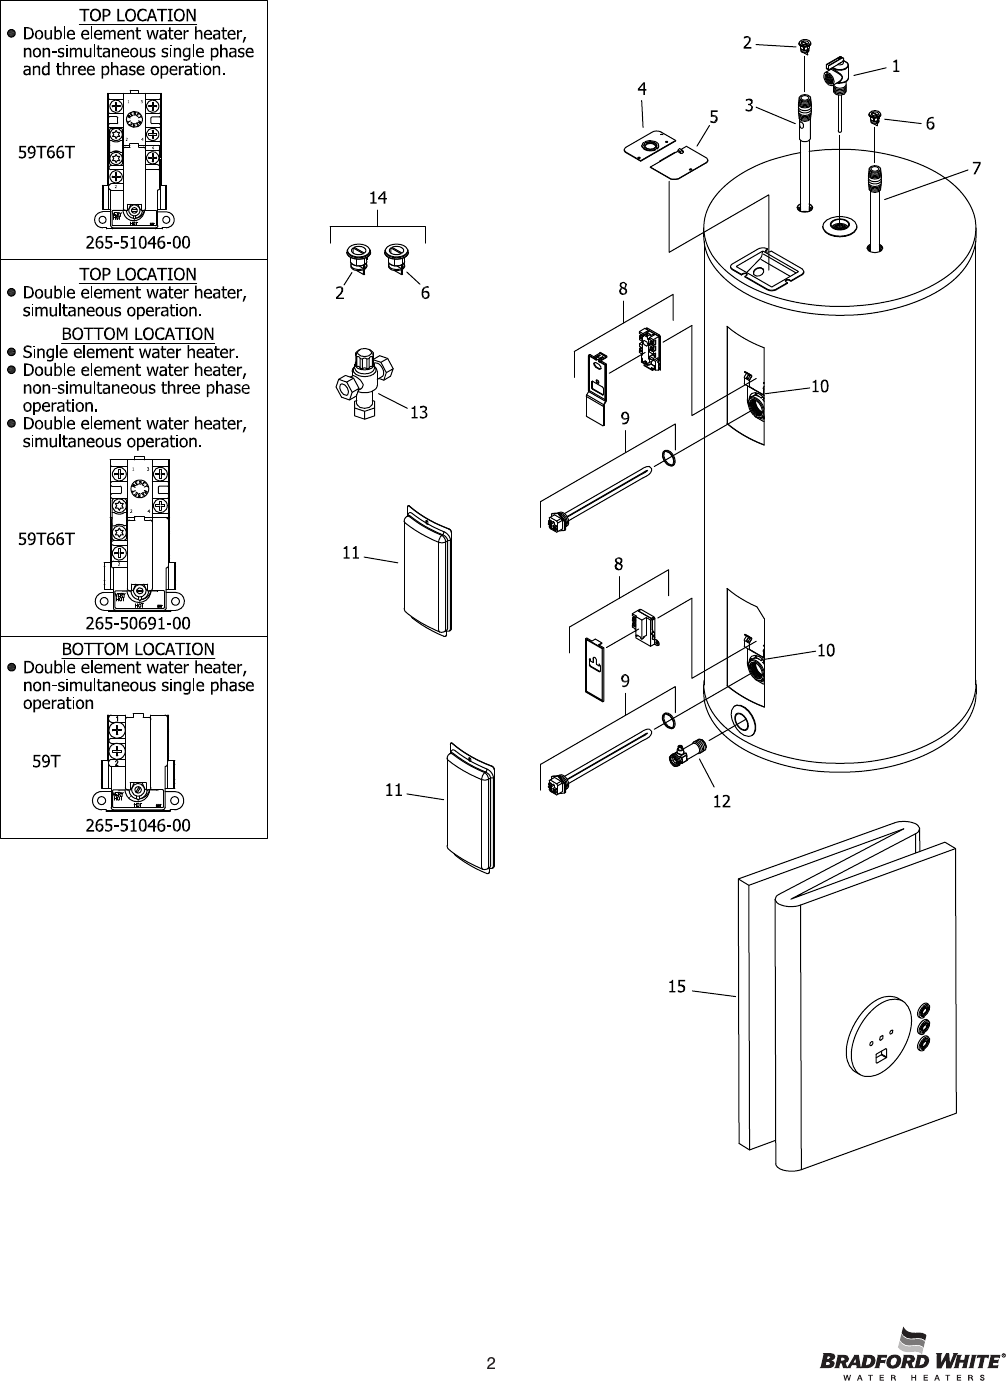 Residential Wiring Guide - Professional User Manual EBooks •